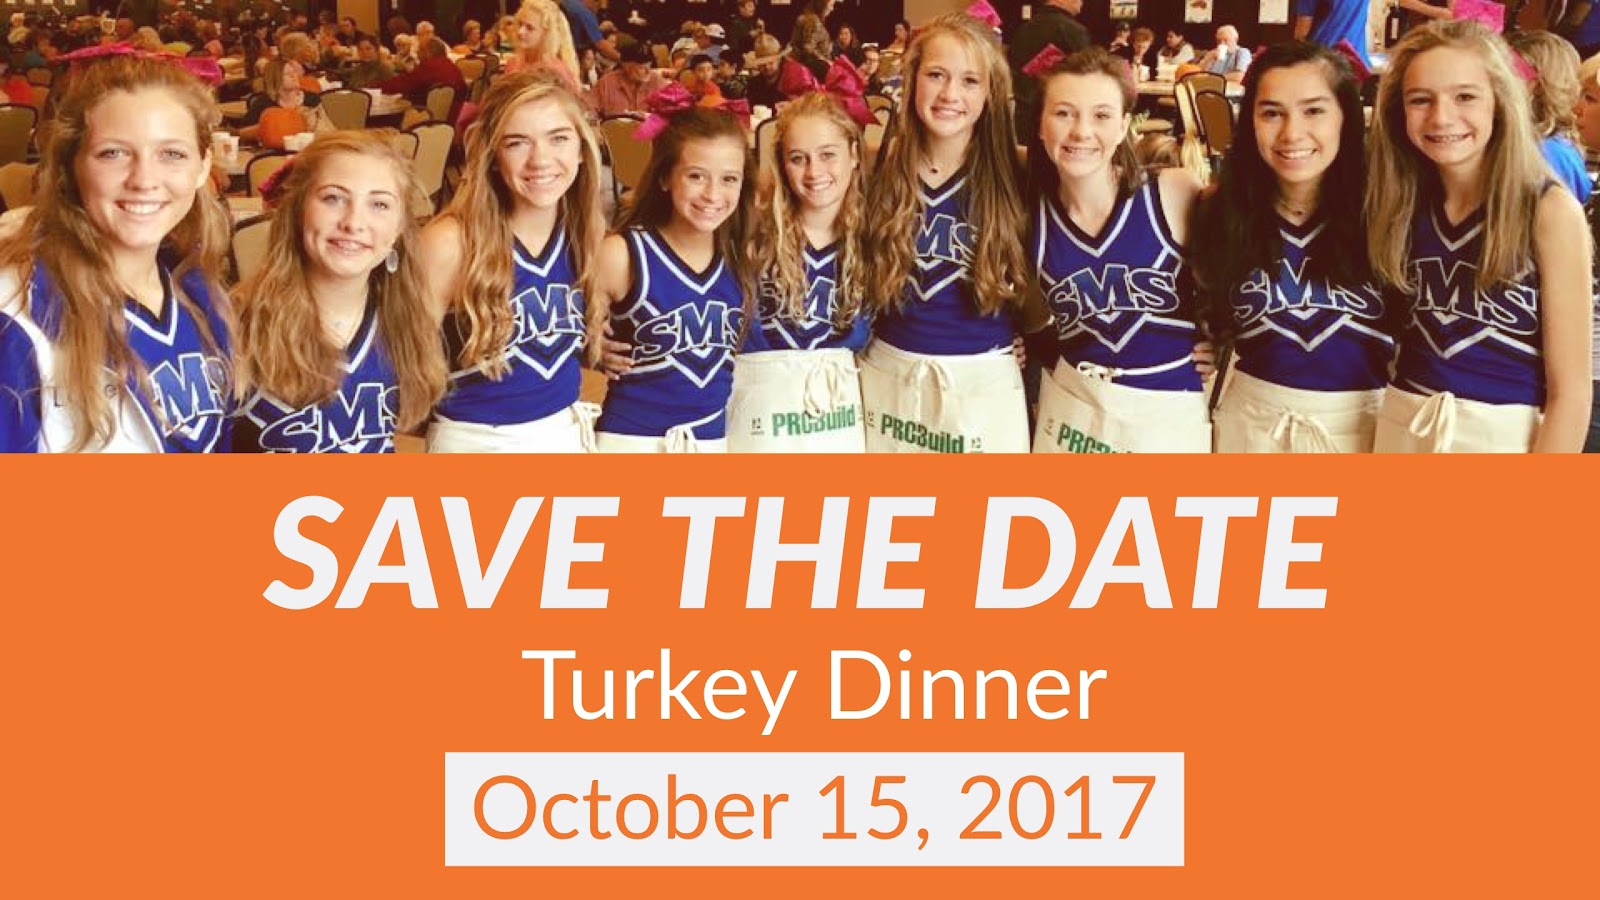 save the date 2017.JPG